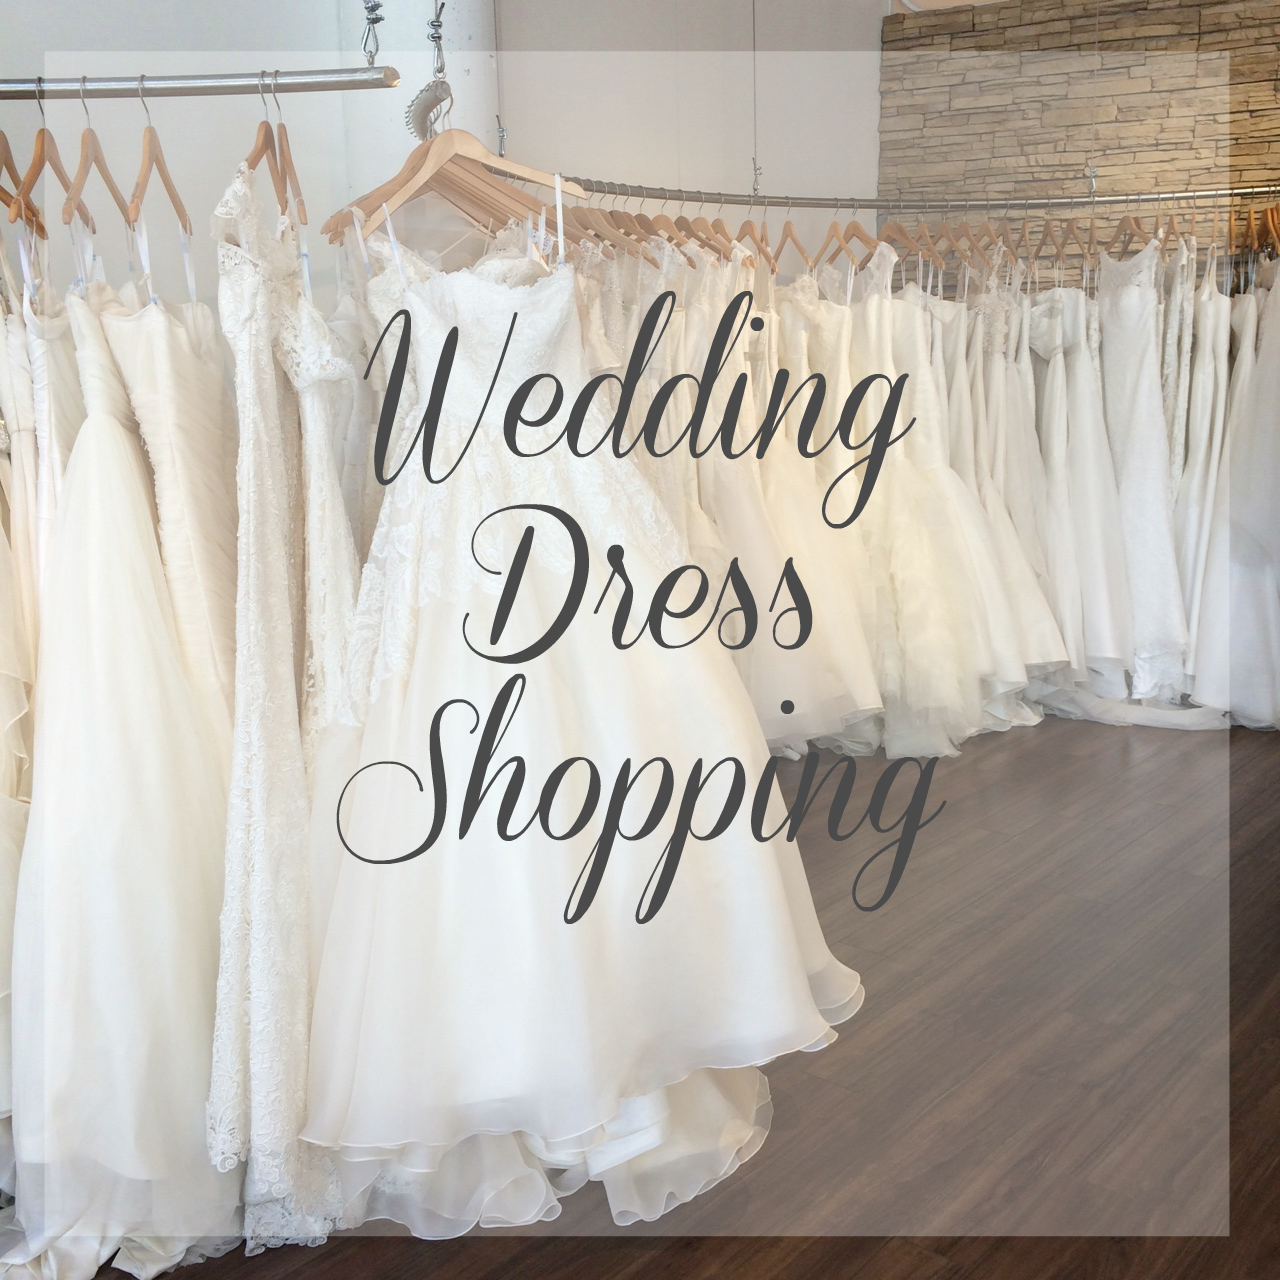 From Foothills to Fog: Wedding Wednesday: Dress Shopping